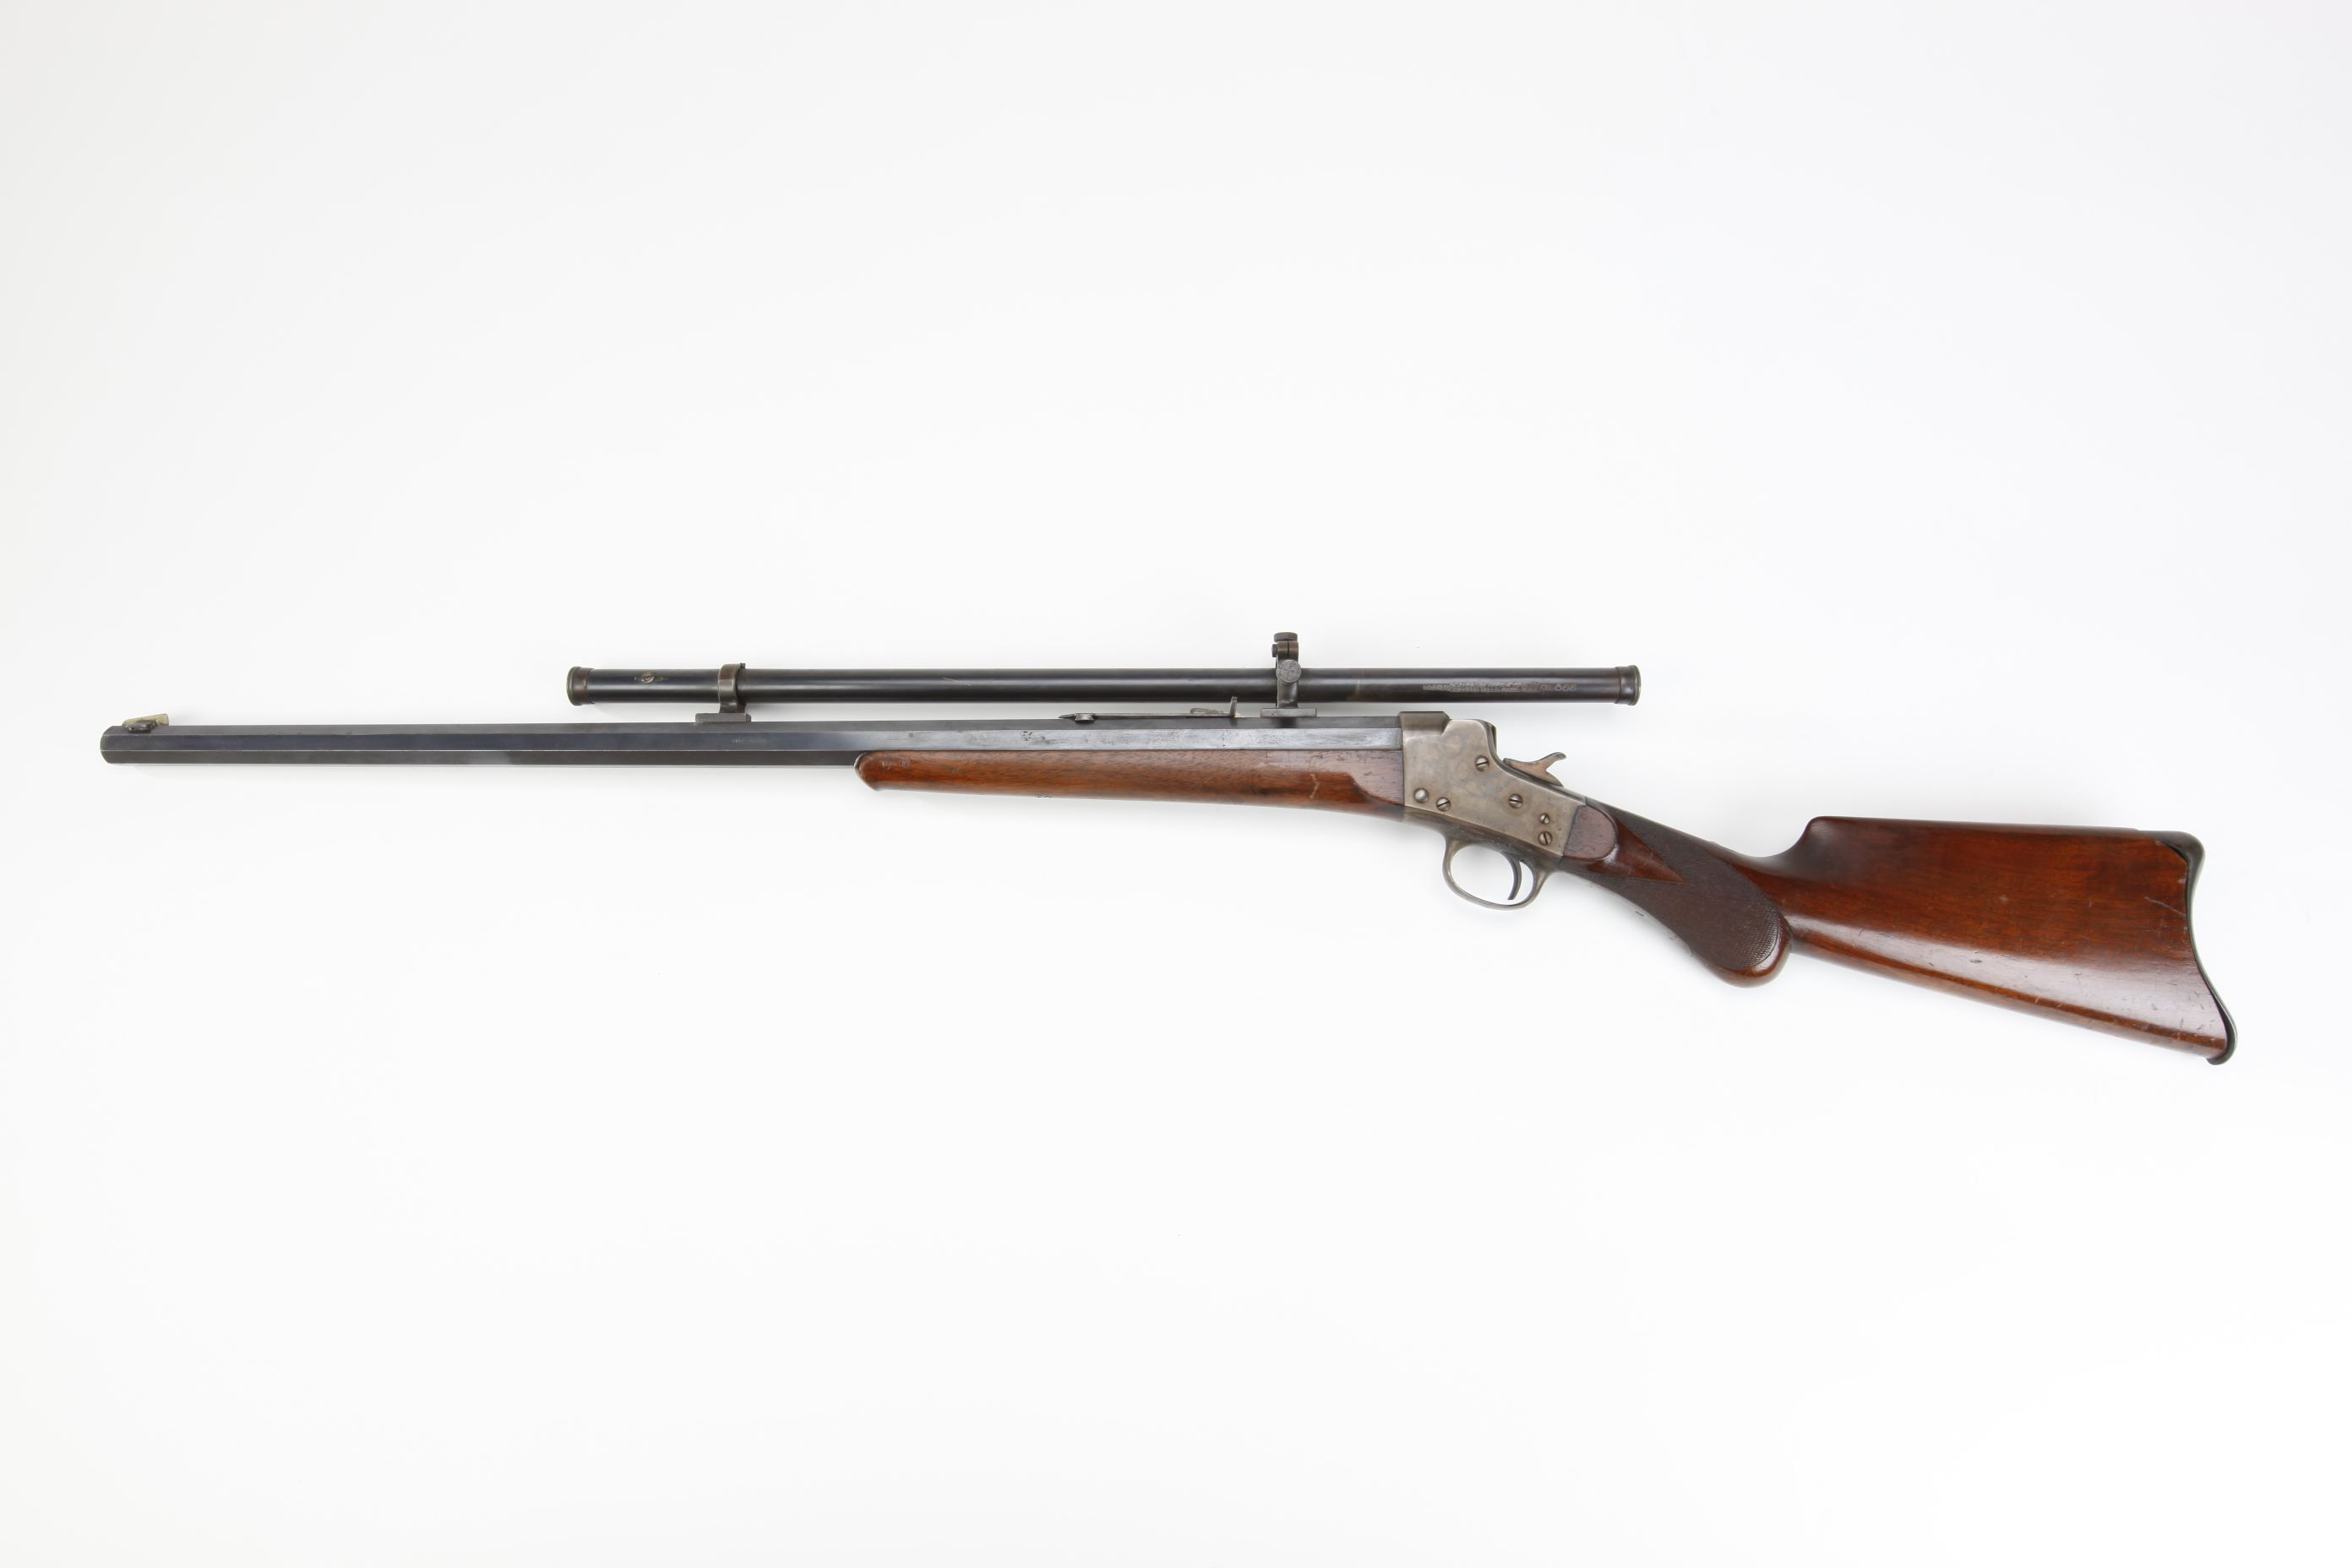 Remington Hepburn Rolling Block Rifle with Stevens telescopic sight